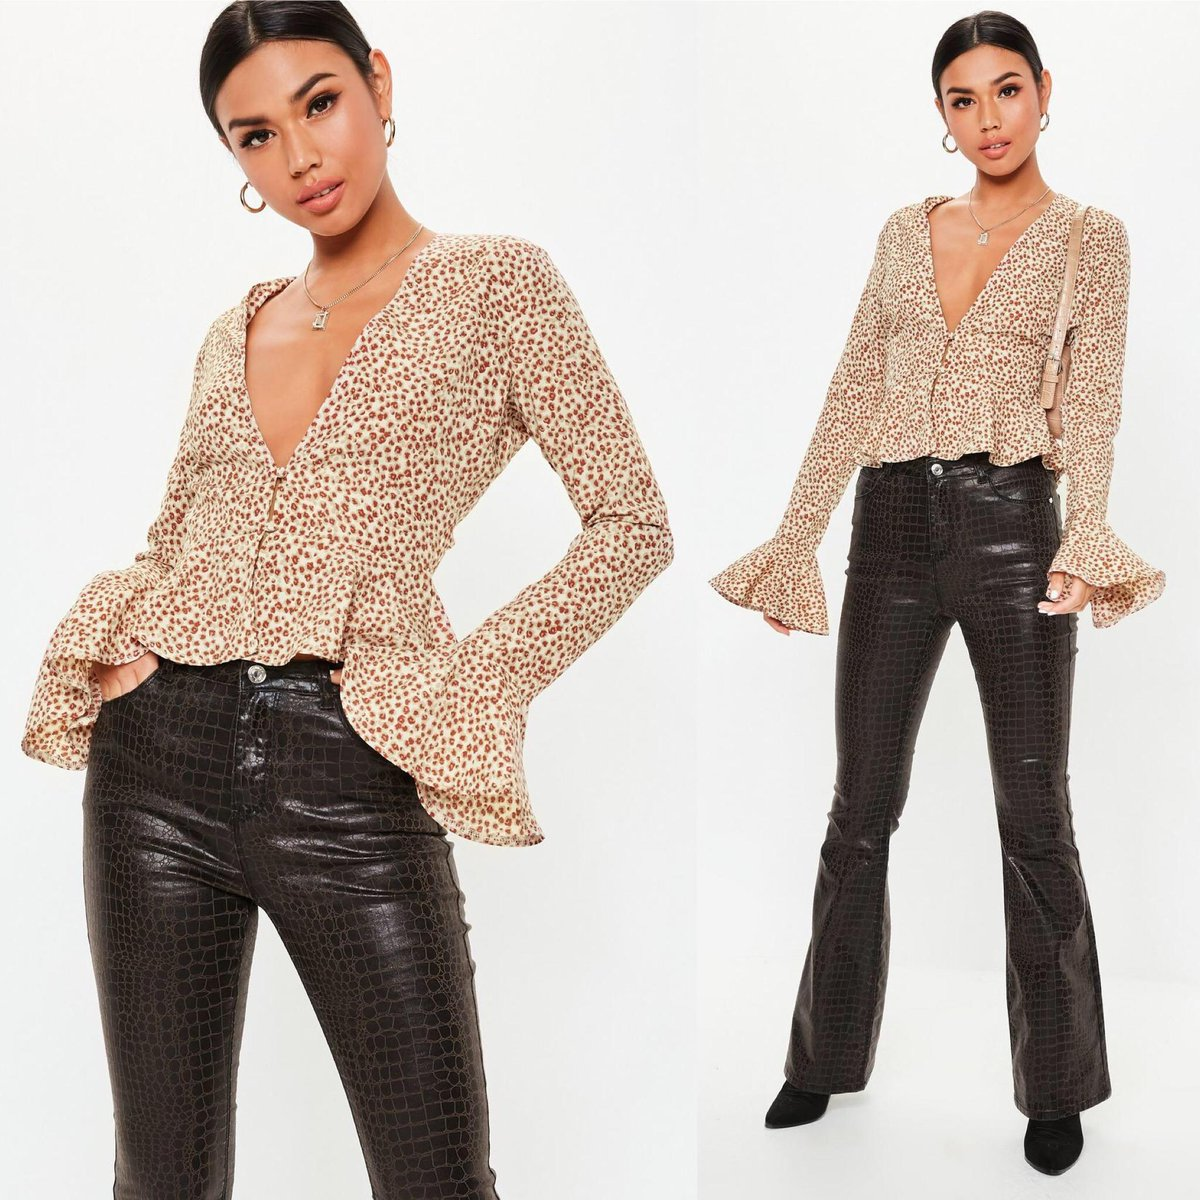 Will we ever be over leopard print? 🐆✨Hit the link to shop the 'khaki leopard print peplum blouse' https://t.co/MUqqEU1KuN on site rn 💸💖